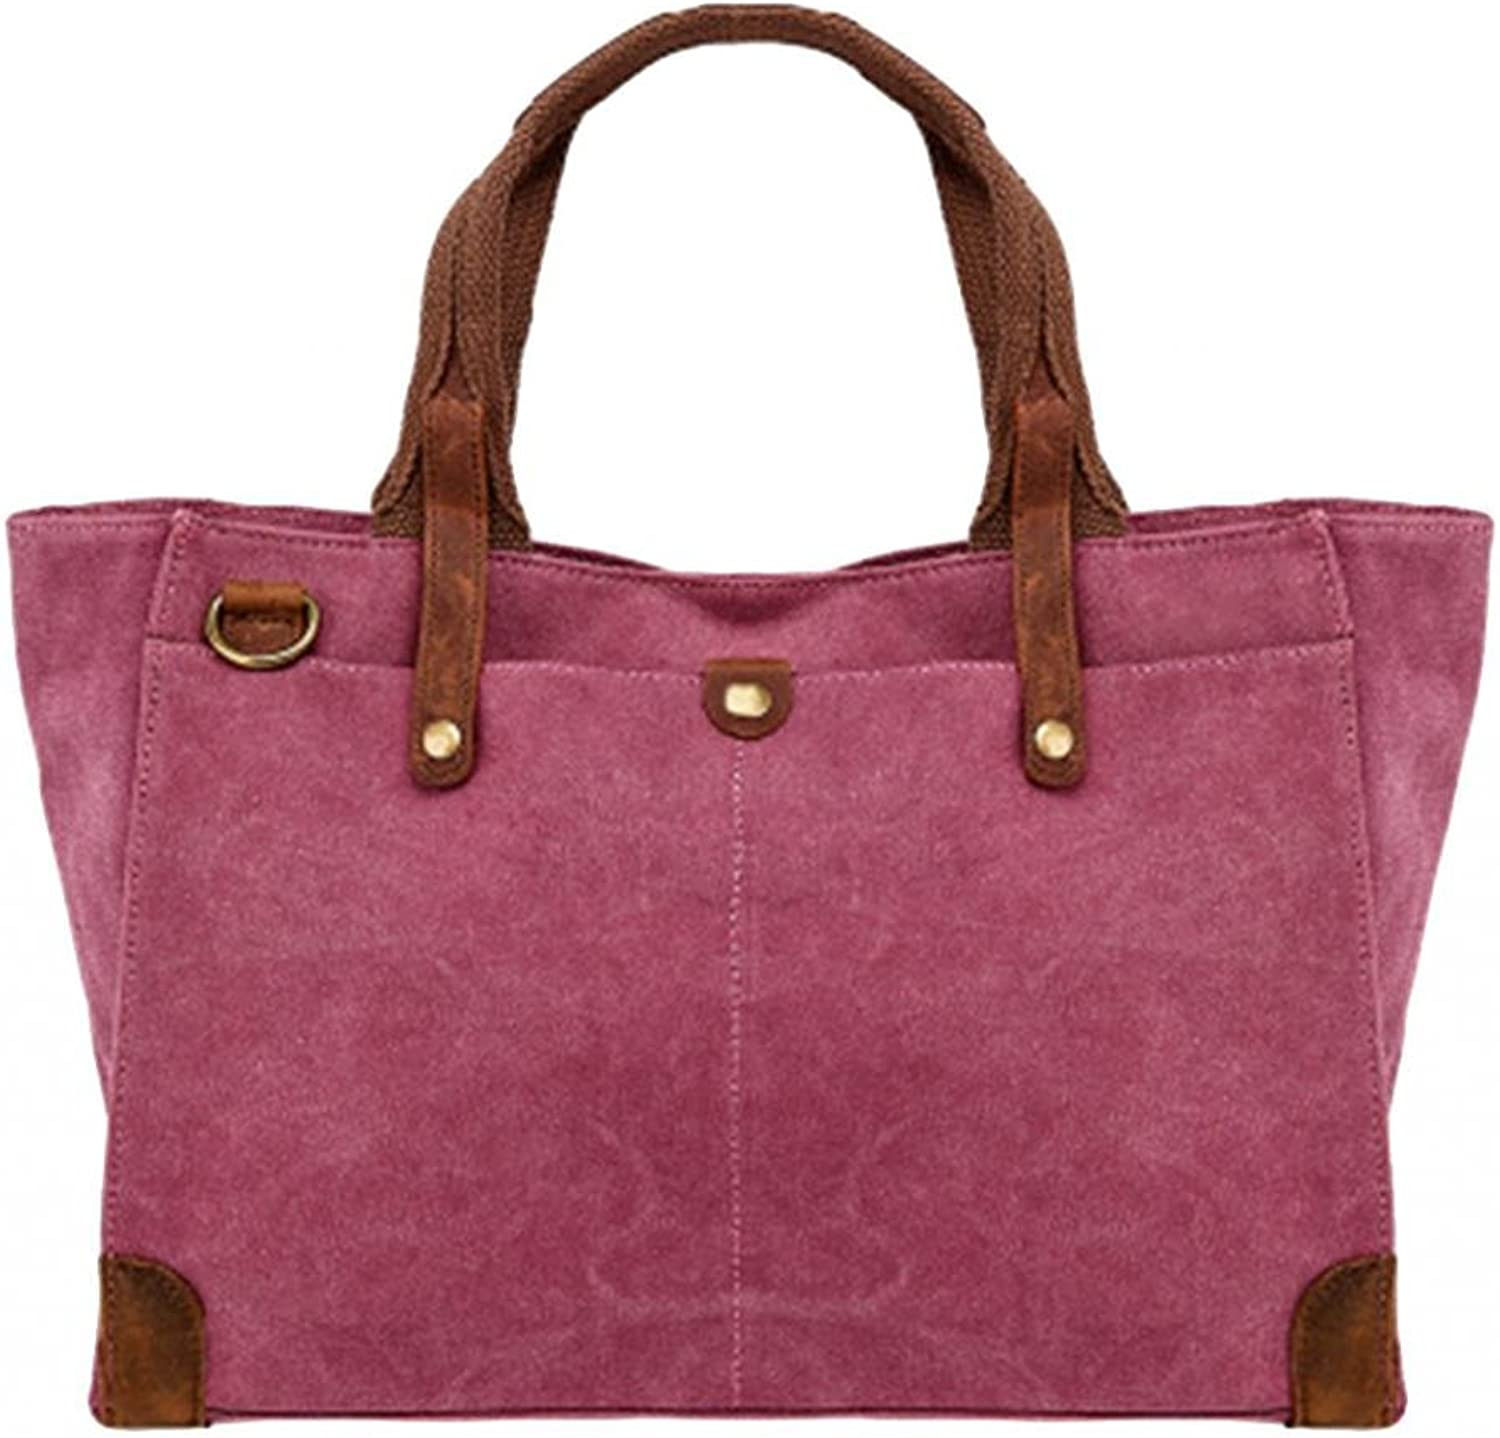 MedzRE Women's Fashion Large Canvas Shopper Weekend Tote Bag